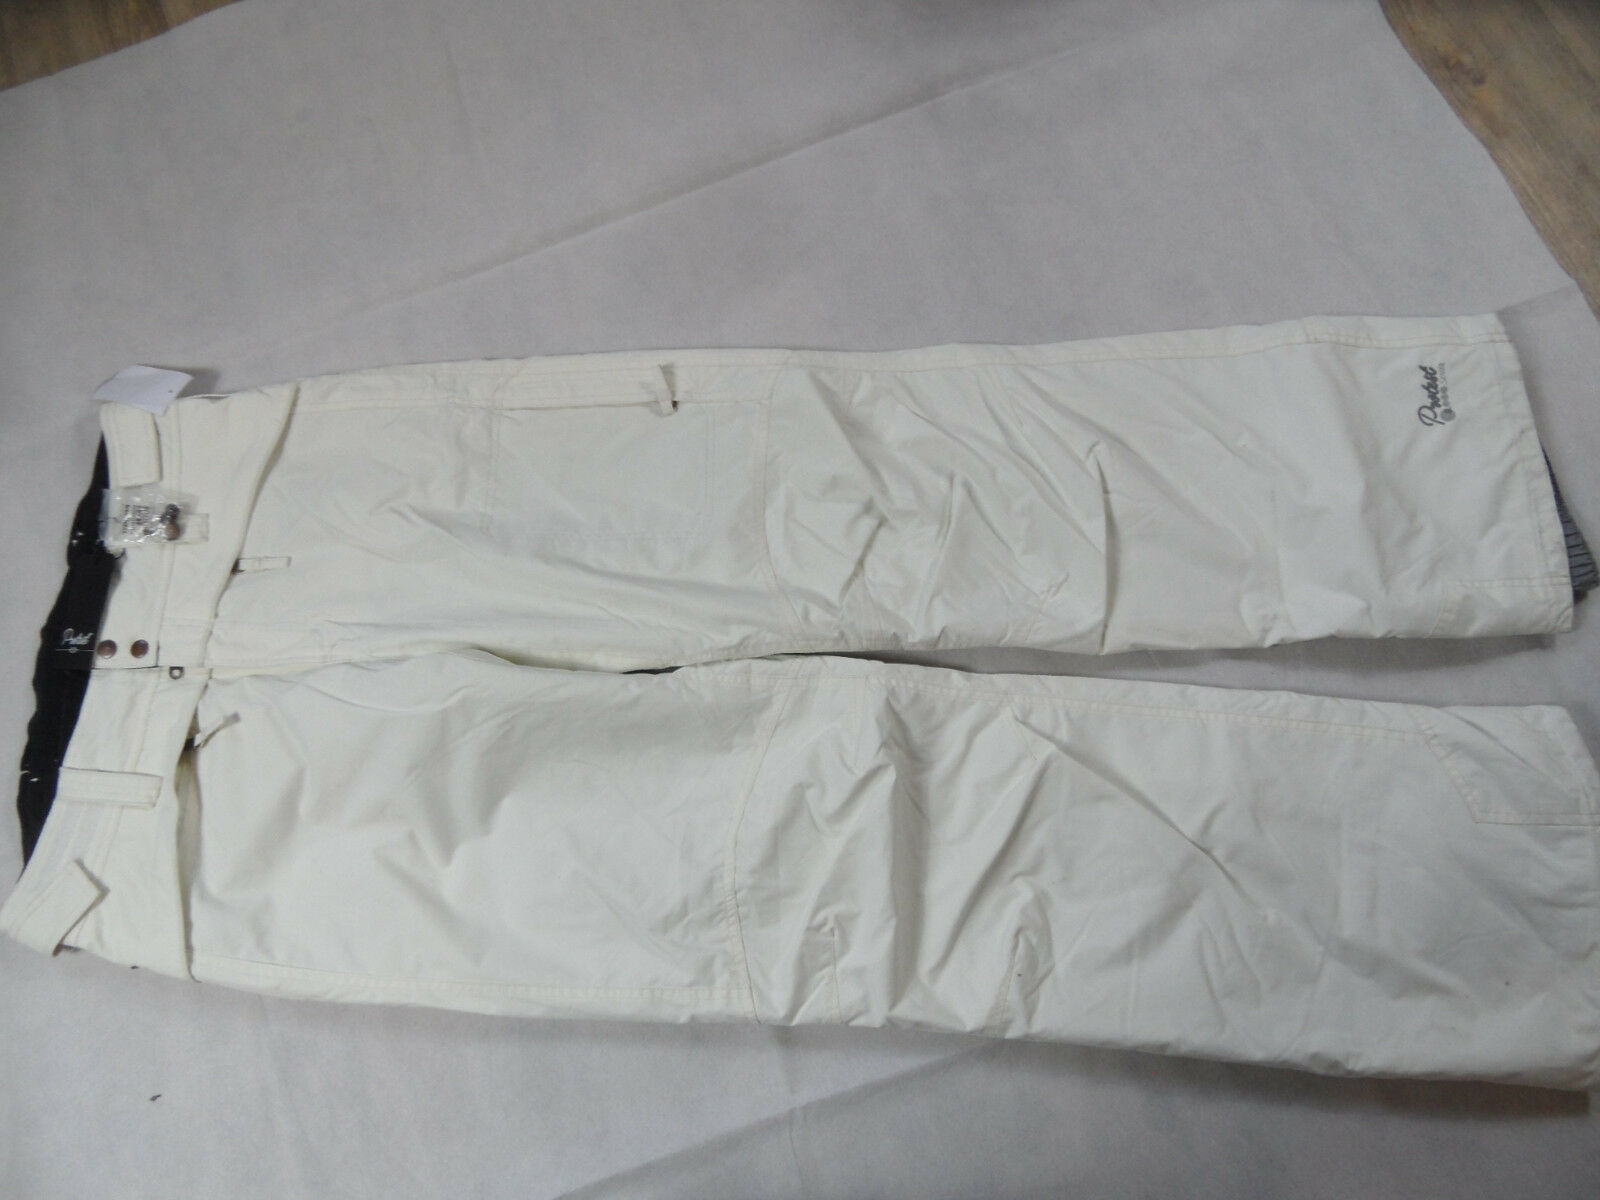 PROTEST Skihose HOPKINS seashell 5 K creme regular fit Gr. 42 NEU